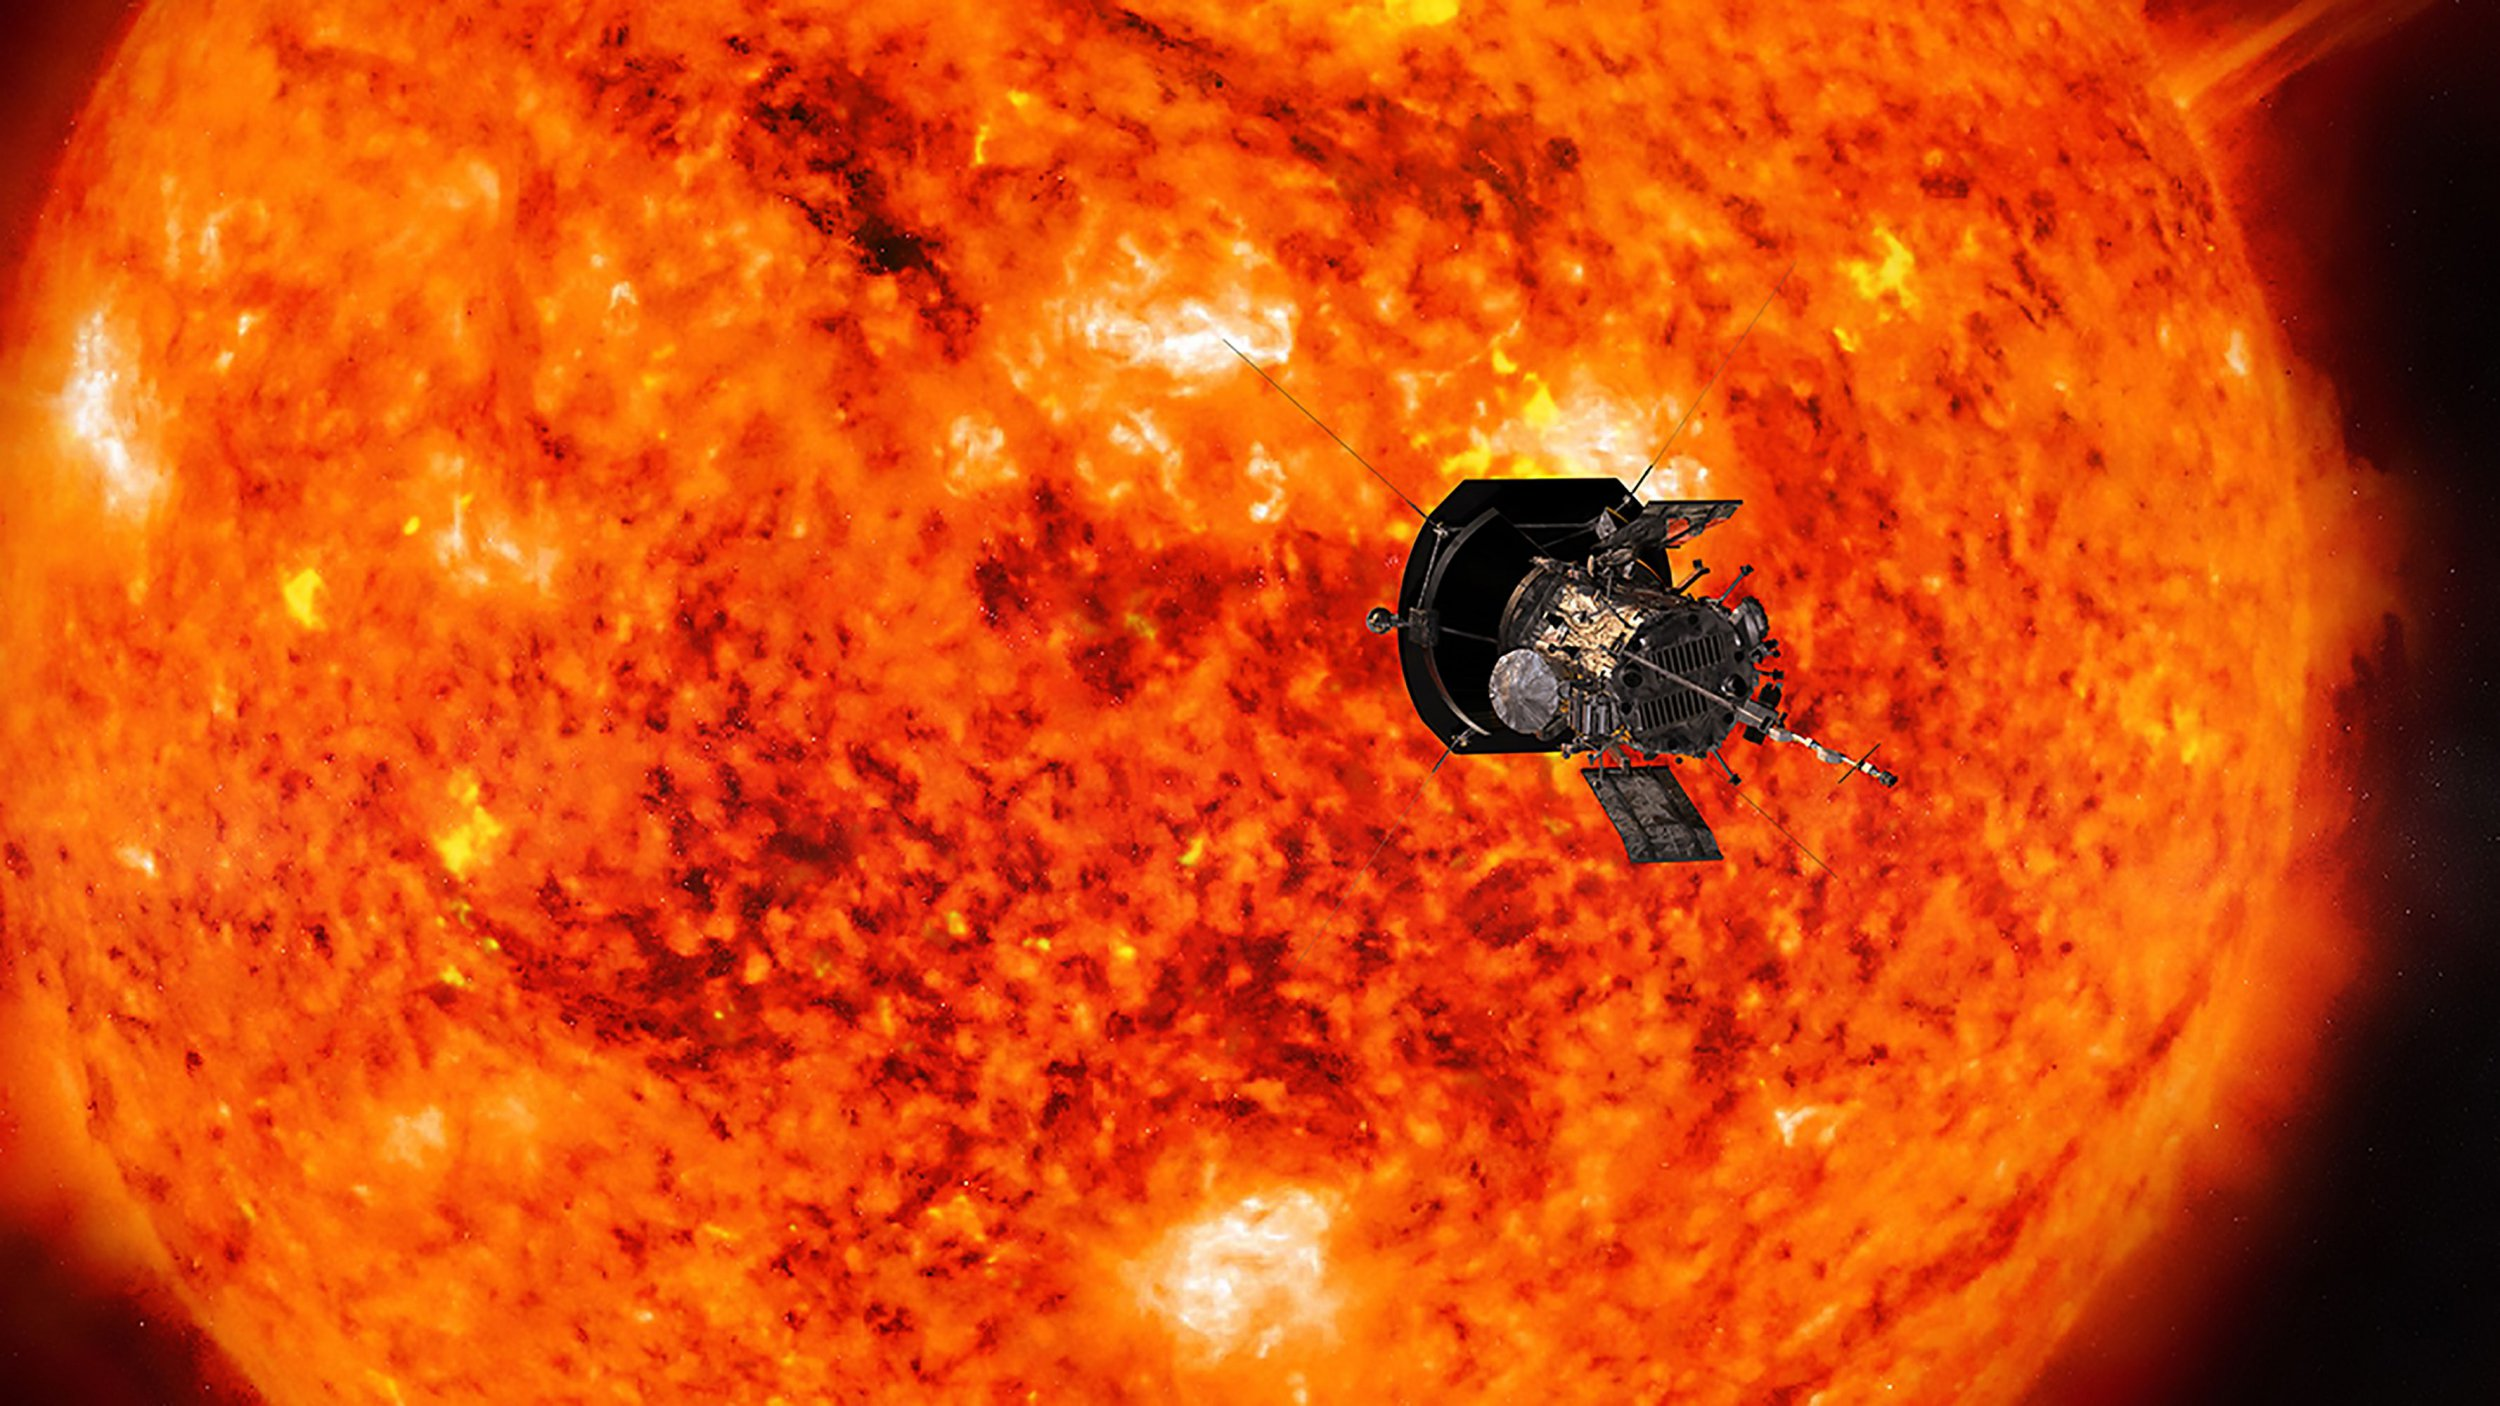 """This handout illustration obtained July 6, 2018 courtesy of NASA/Johns Hopkins APL shows an artists conception of NASAs Parker Solar Probe, the spacecraft that will fly through the Suns corona to trace how energy and heat move through the stars atmosphere. NASA is poised to launch a $1.5 billion spacecraft on a brutally hot journey toward the Sun, offering scientists the closest-ever view of our strange and mysterious star. After the Parker Solar Probe blasts off from Cape Canaveral, Florida, on August 11, 2018, it will become the first spacecraft ever to fly through the Sun's scorching atmosphere, known as the corona. / AFP PHOTO / NASA/Johns Hopkins APL / HO / RESTRICTED TO EDITORIAL USE / MANDATORY CREDIT: """"AFP PHOTO / NASA / Johns Hopkins APL"""" / NO MARKETING / NO ADVERTISING CAMPAIGNS / DISTRIBUTED AS A SERVICE TO CLIENTS TO GO WITH AFP STORY by Kerry SHERIDAN, """"NASA poised to launch first Sun-skimming spaceship"""" / HO/AFP/Getty Images"""